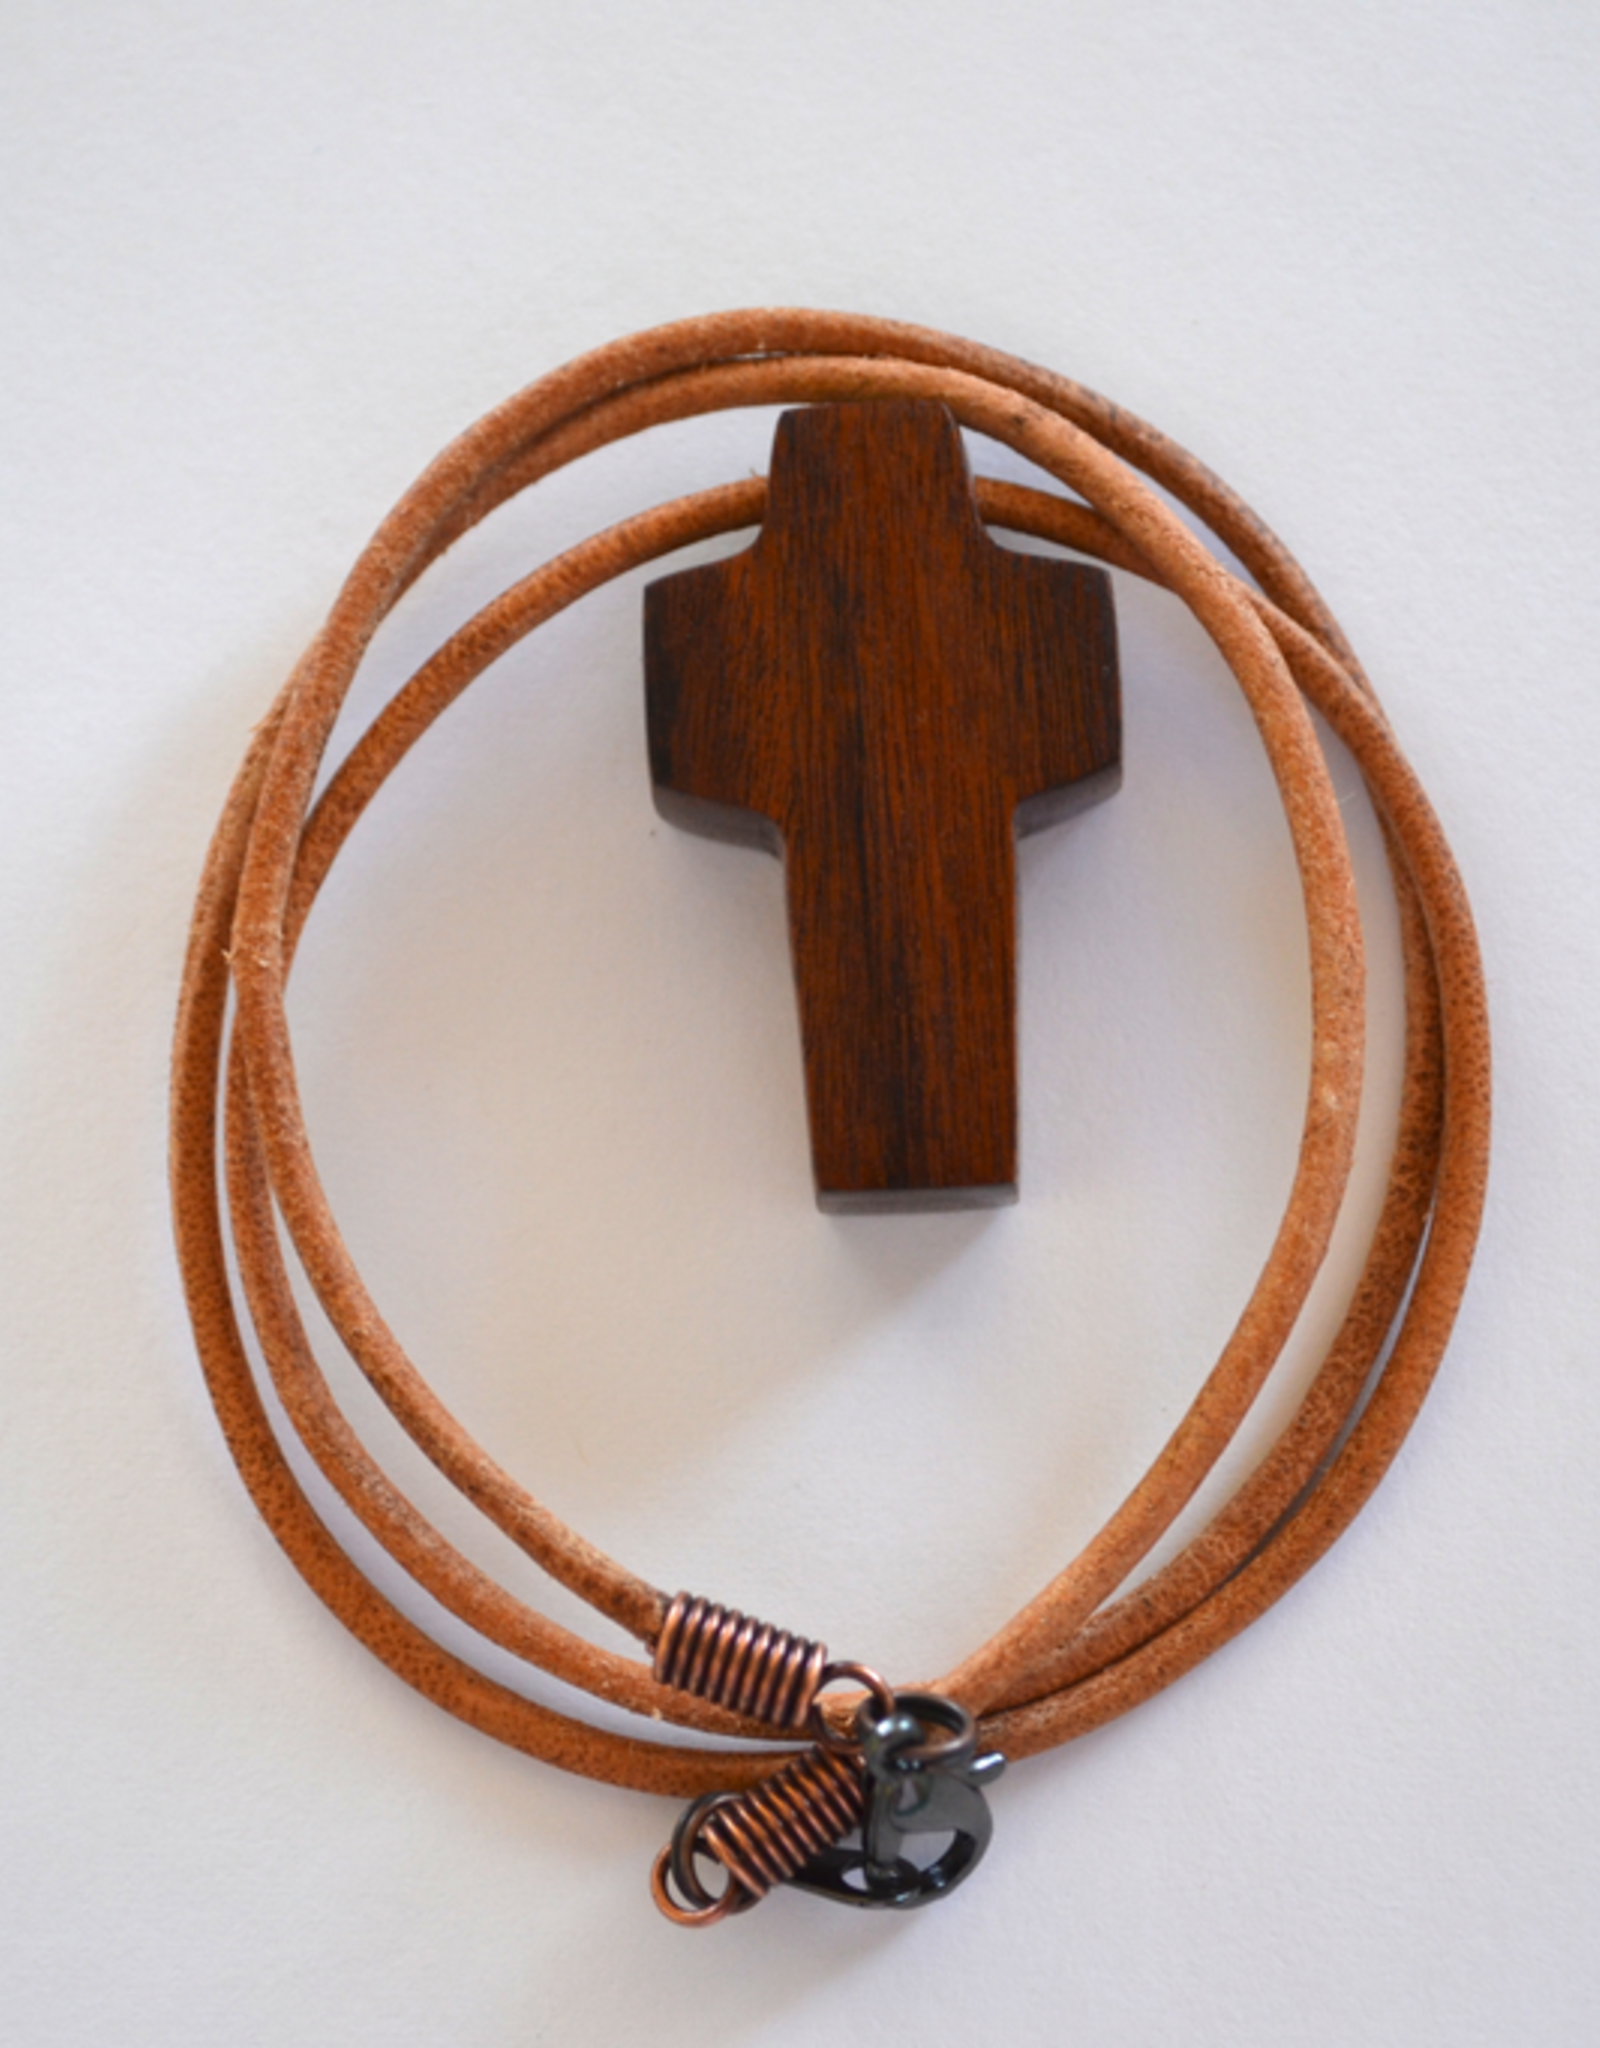 """Merry Crosses 24"""" Merry Hand Crafted 1 1/2"""" Walnut Wood Cross Necklace"""